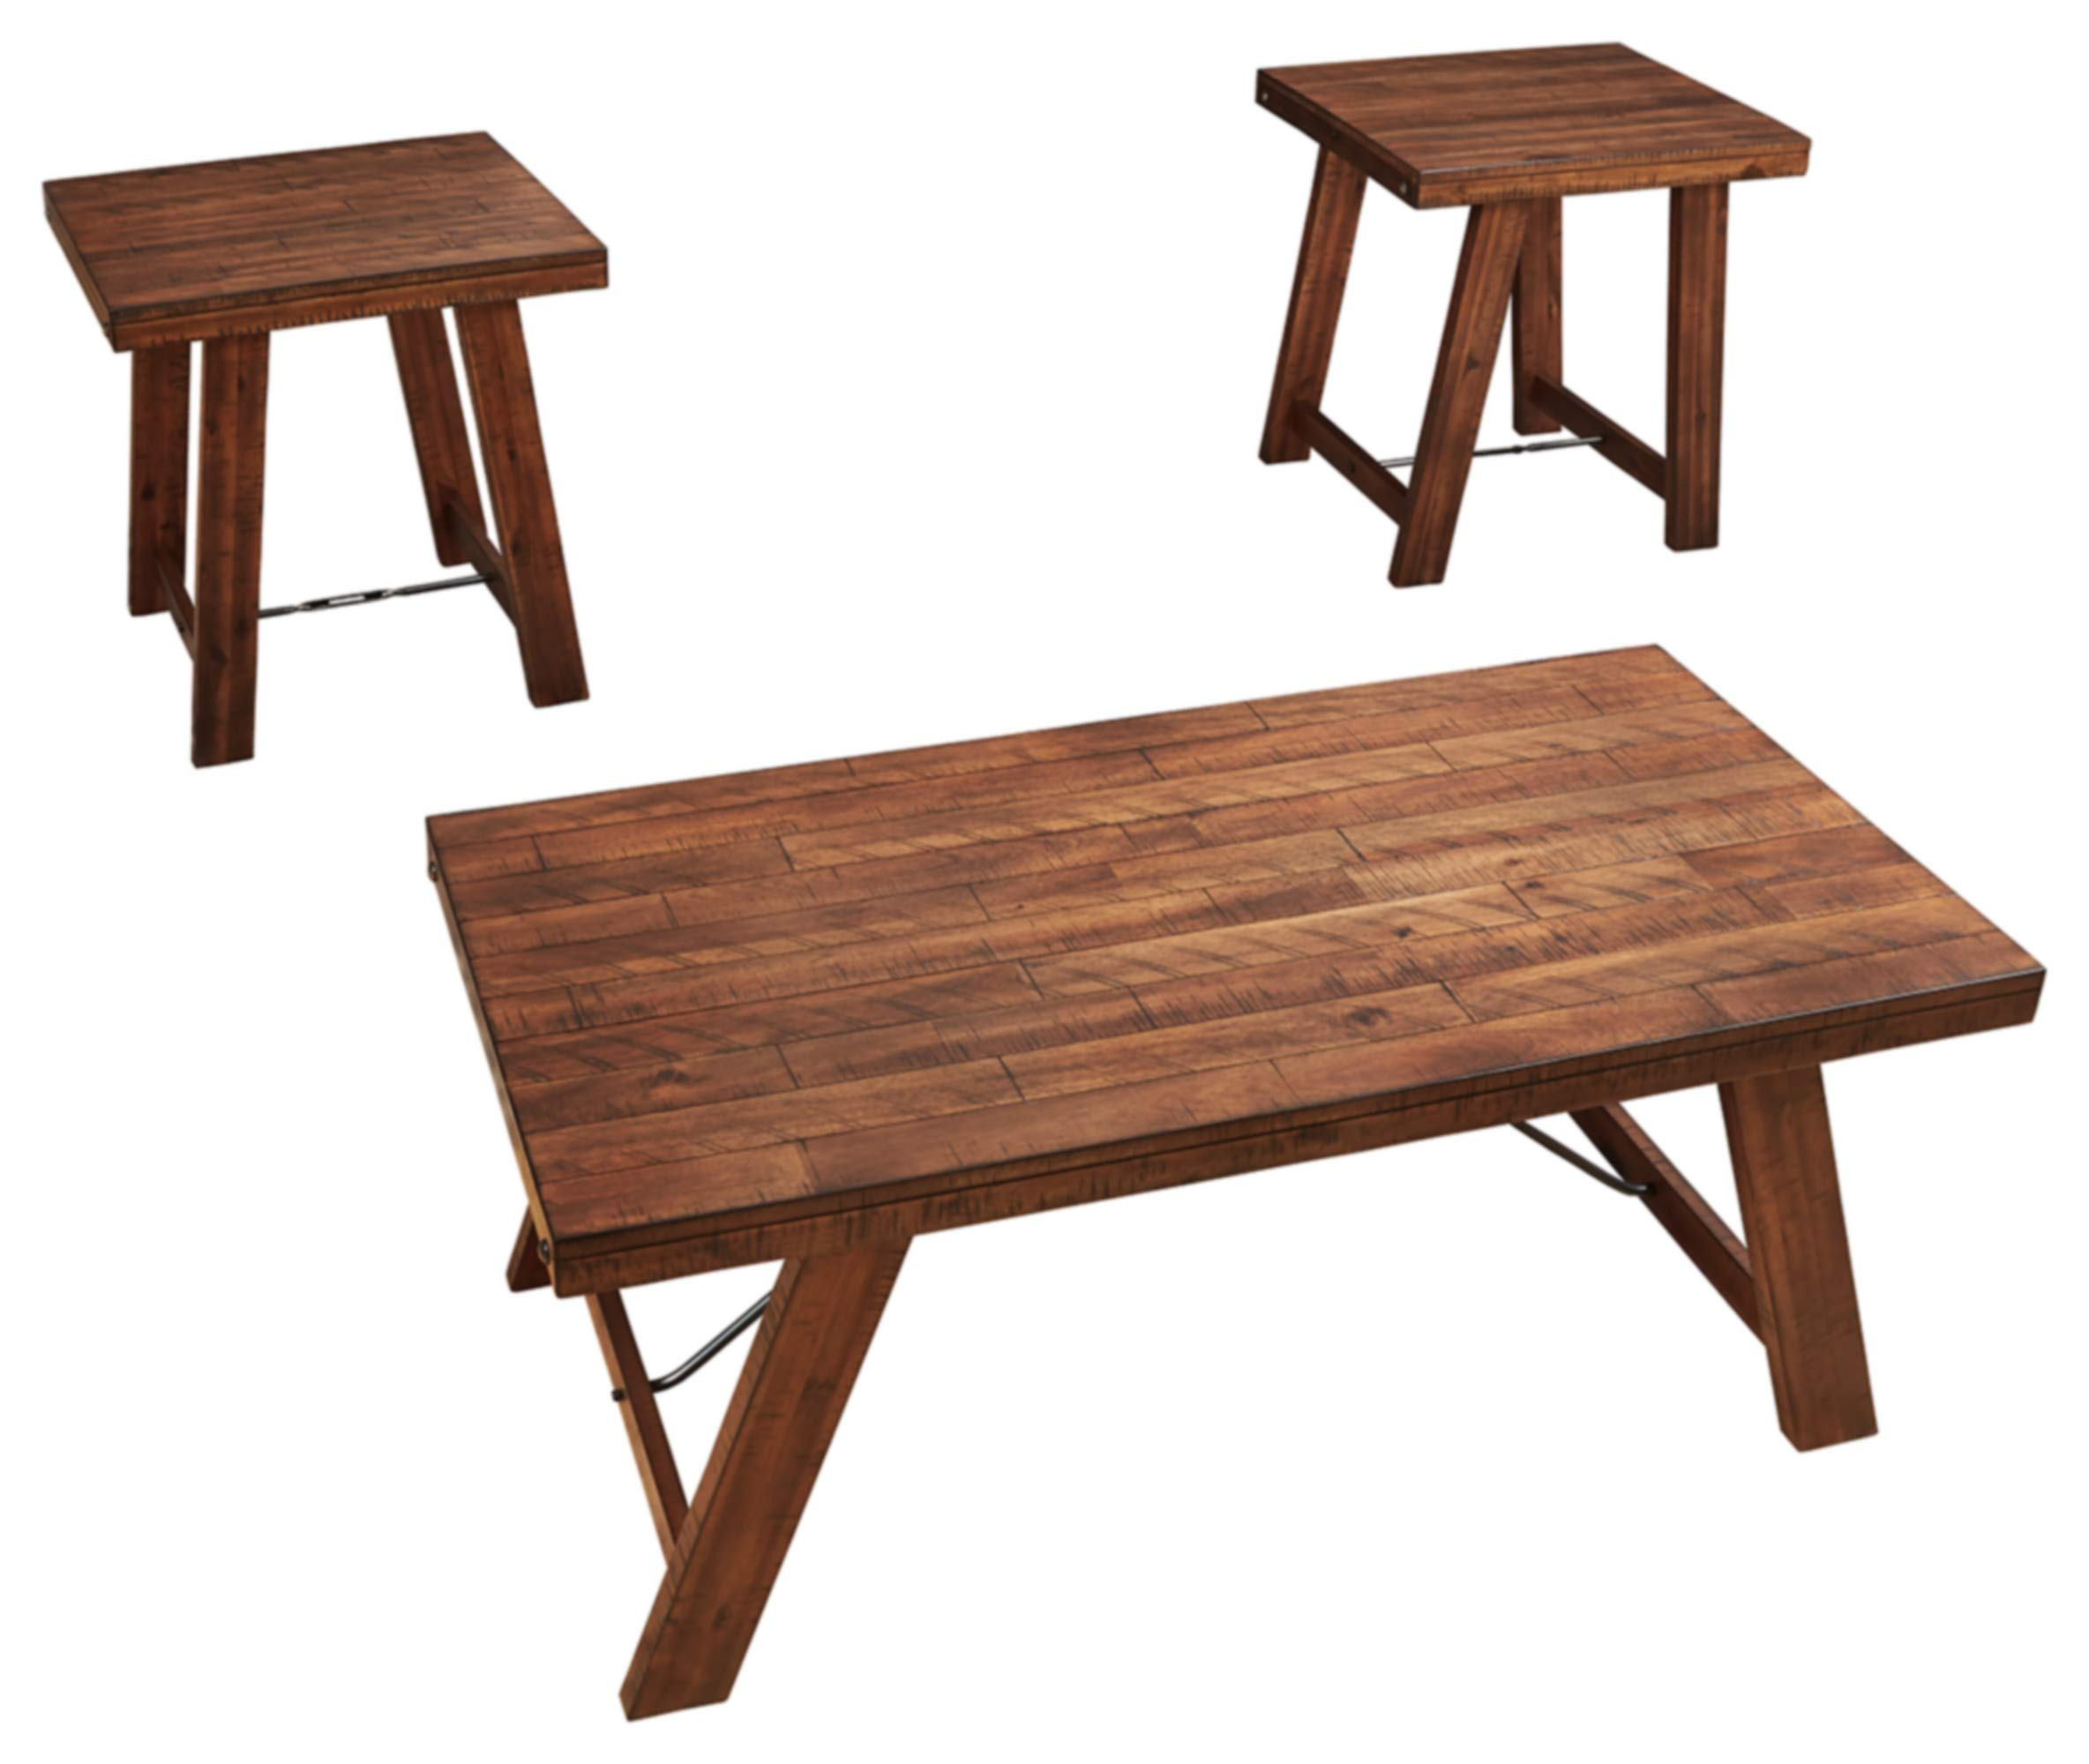 Signature Design by Ashley - Frezler Casual Wood Occasional Table Set by Signature Design by Ashley